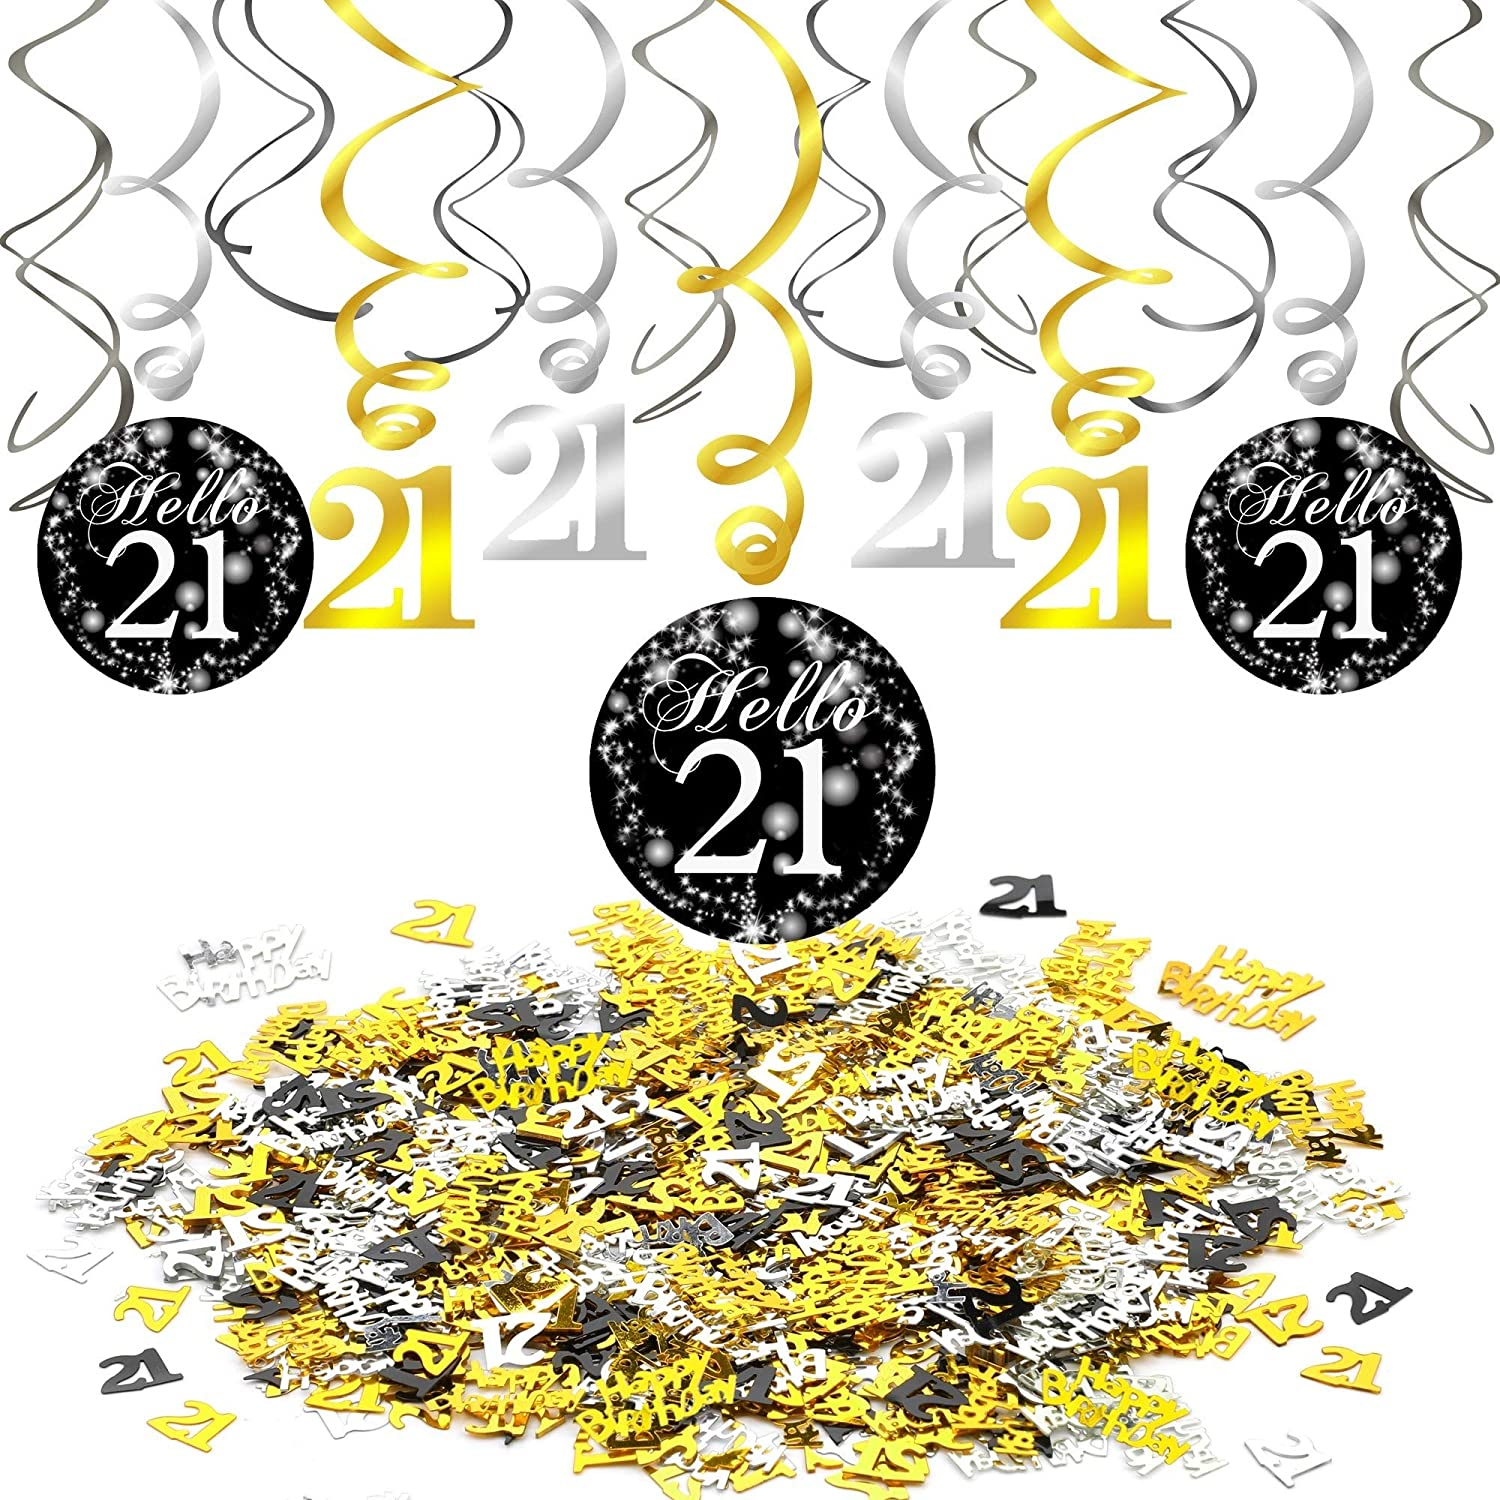 Amazon Com Konsait 21st Swirl Birthday Hanging Decorations Black And Gold 15 Counts Happy Birthday 21st Birthday Party Table Confetti 1 05oz 21st Birthday Decorations Party Supplies Gift For Her Him Toys Games,Colored Stainless Steel Tumblers